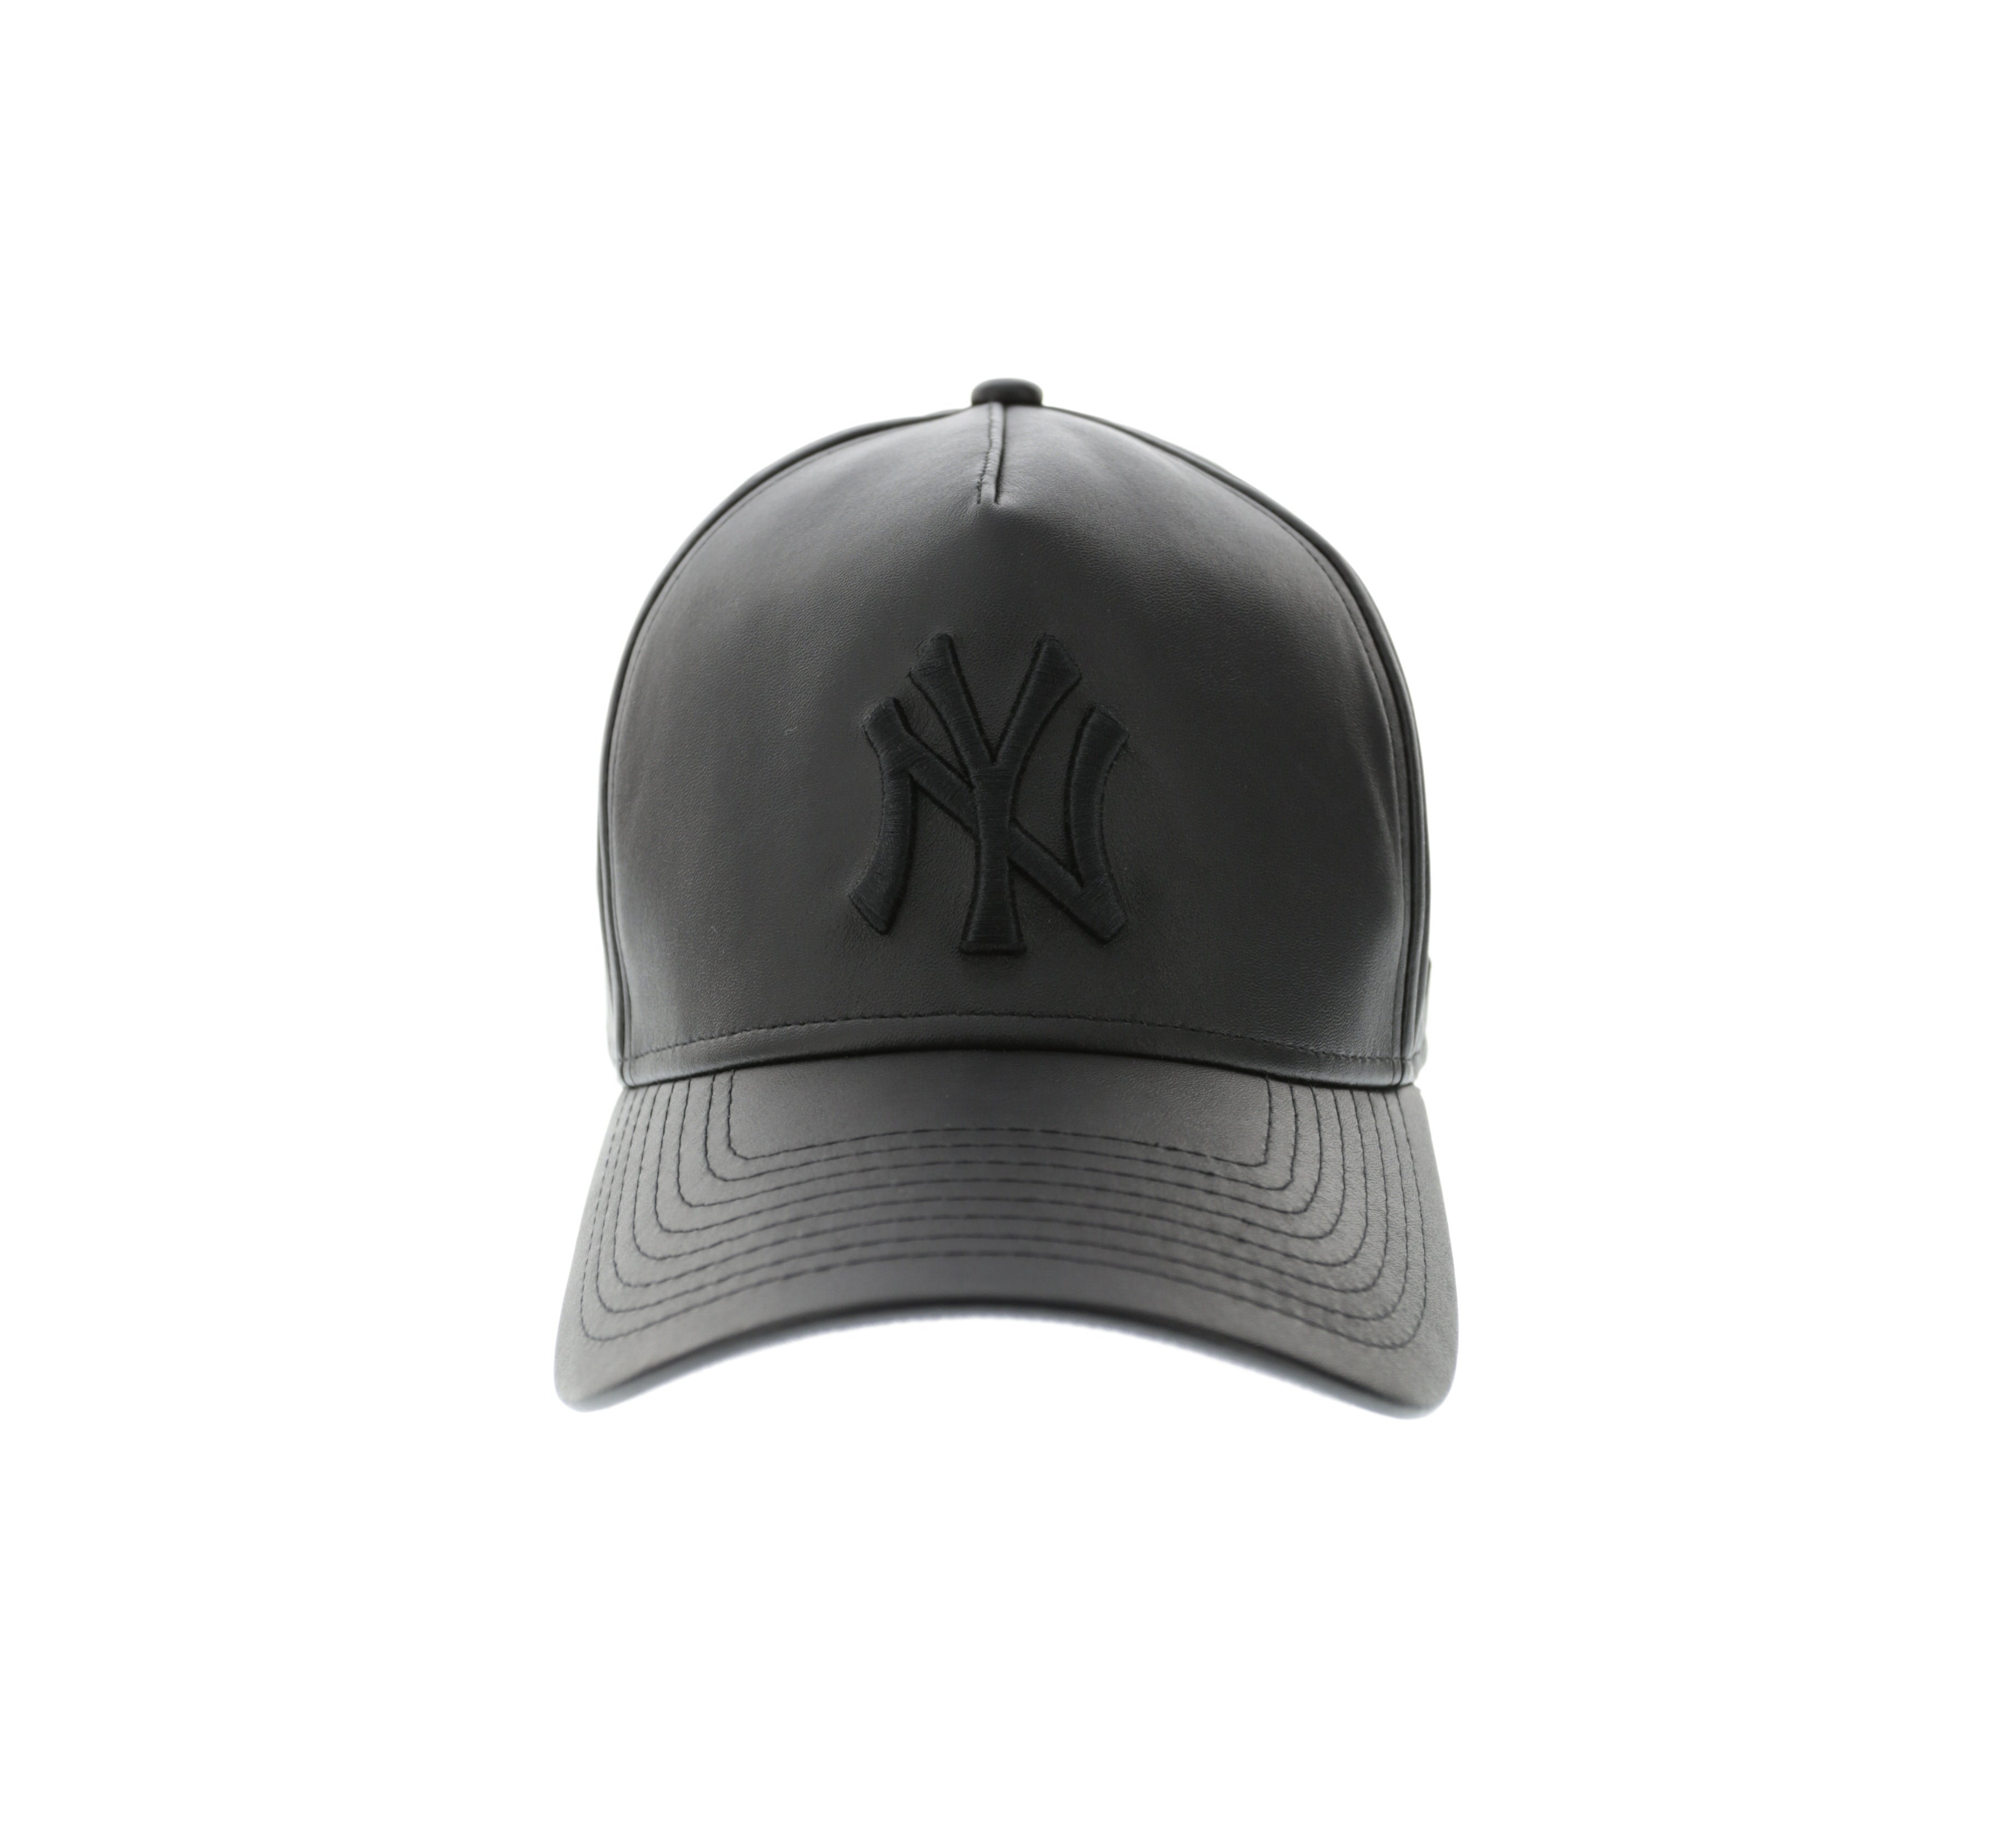 https   www.culturekings.com.au products huf-huf-classic-h-curved ... 1aef3117a020